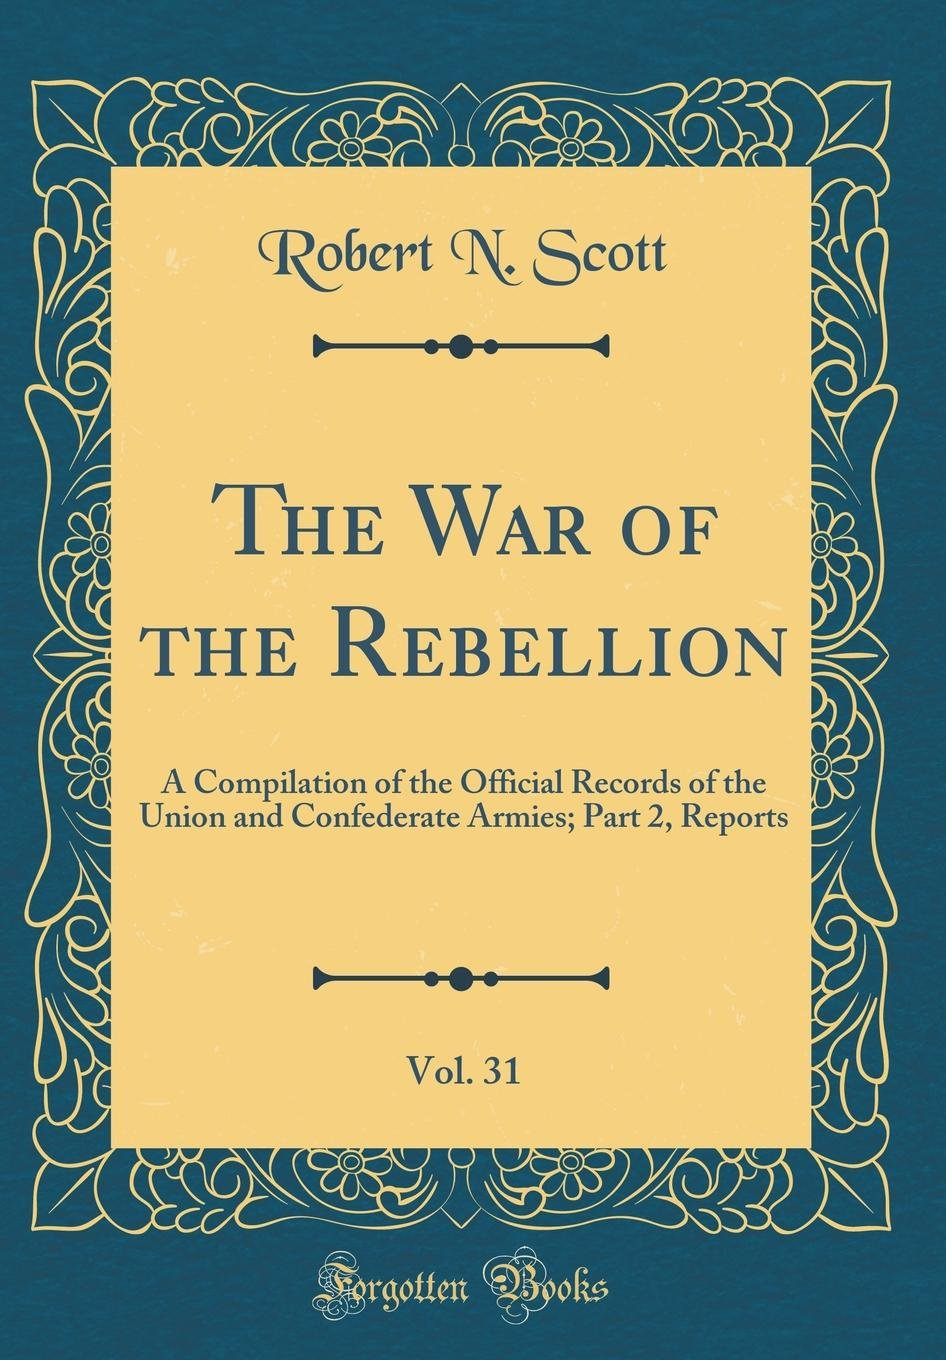 The War of the Rebellion, Vol. 31: A Compilation of the Official Records of the Union and Confederate Armies; Part 2, Reports (Classic Reprint) pdf epub